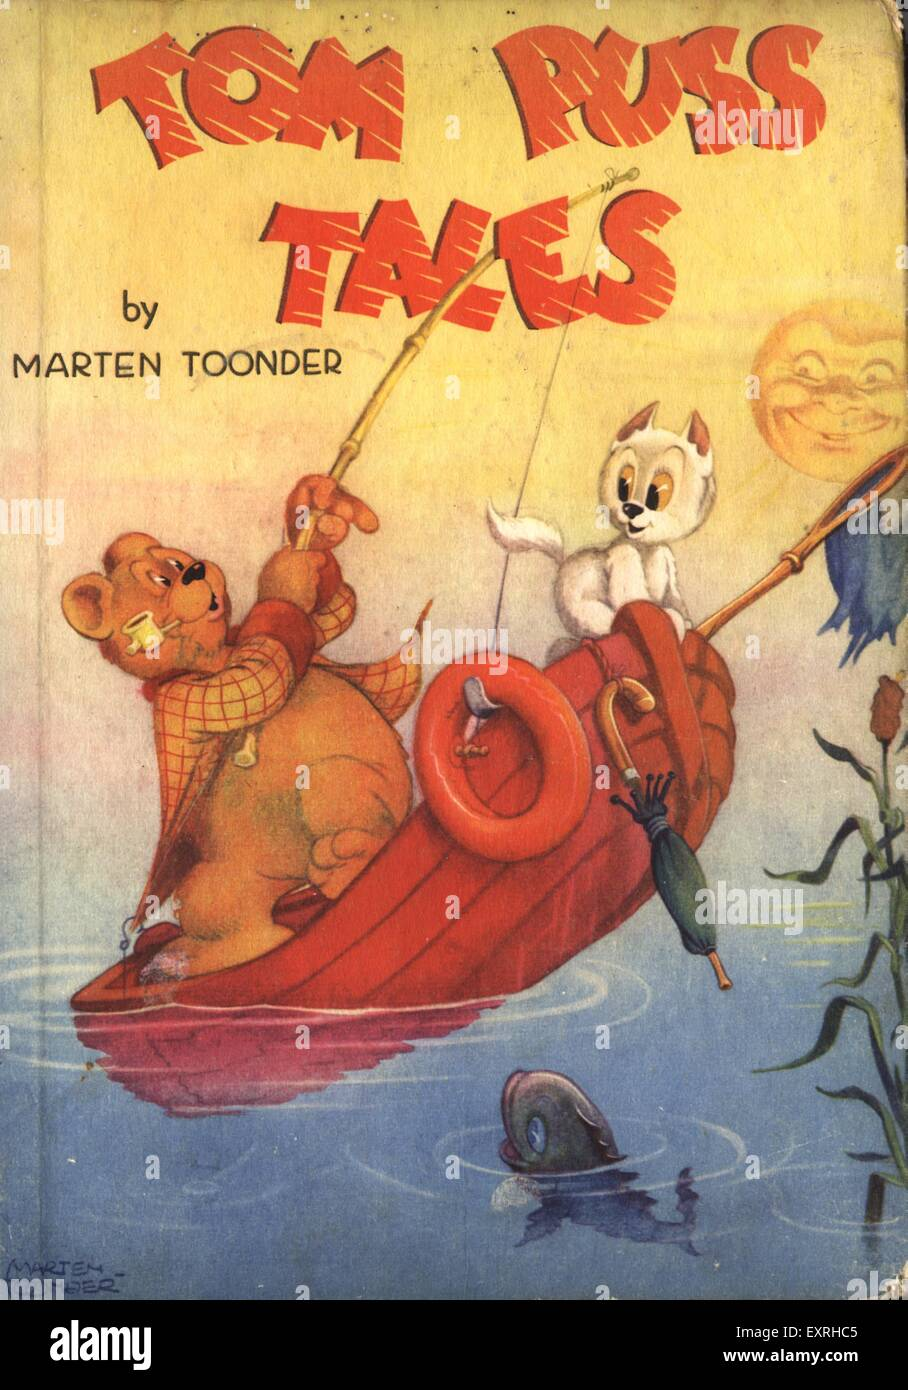 1950s UK Tom Puss Tales Book Cover - Stock Image